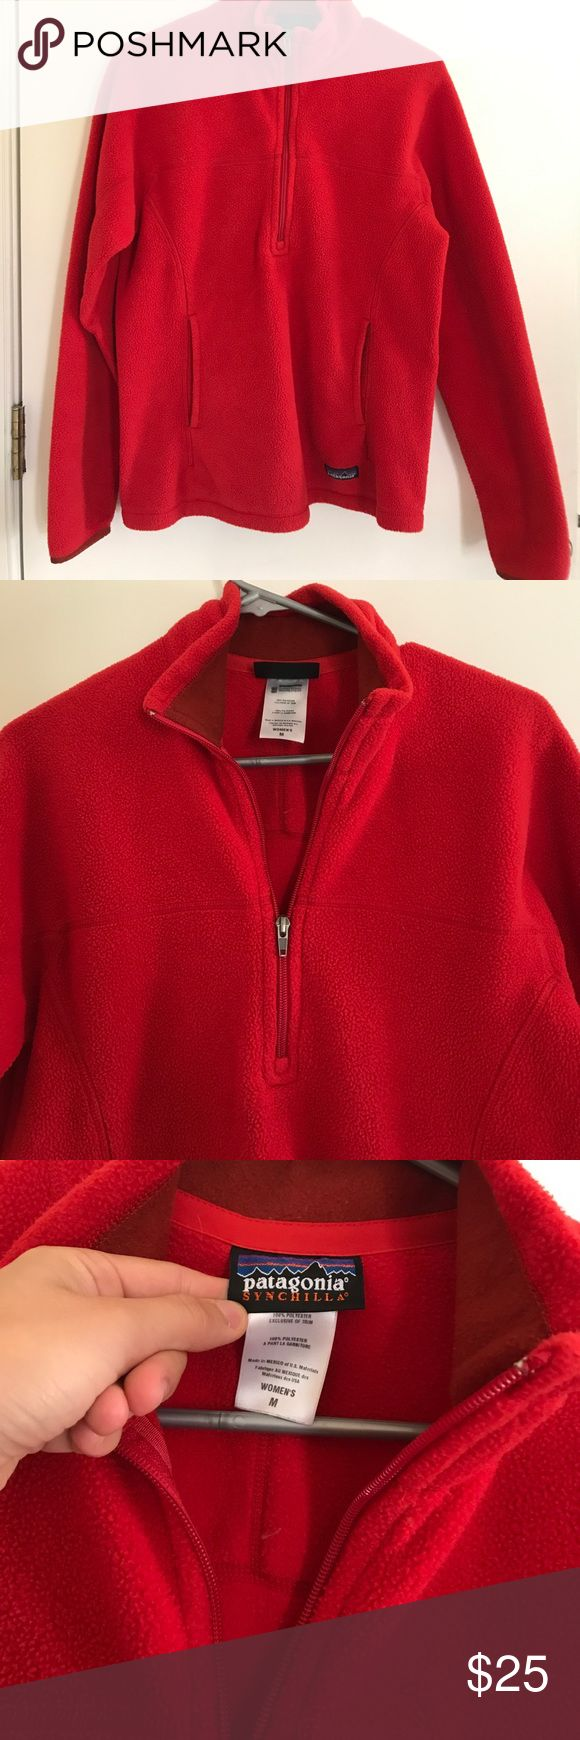 PATAGONIA fleece pullover Red fleece pullover that has 1/4 zip. Has pockets, in great condition Patagonia Jackets & Coats